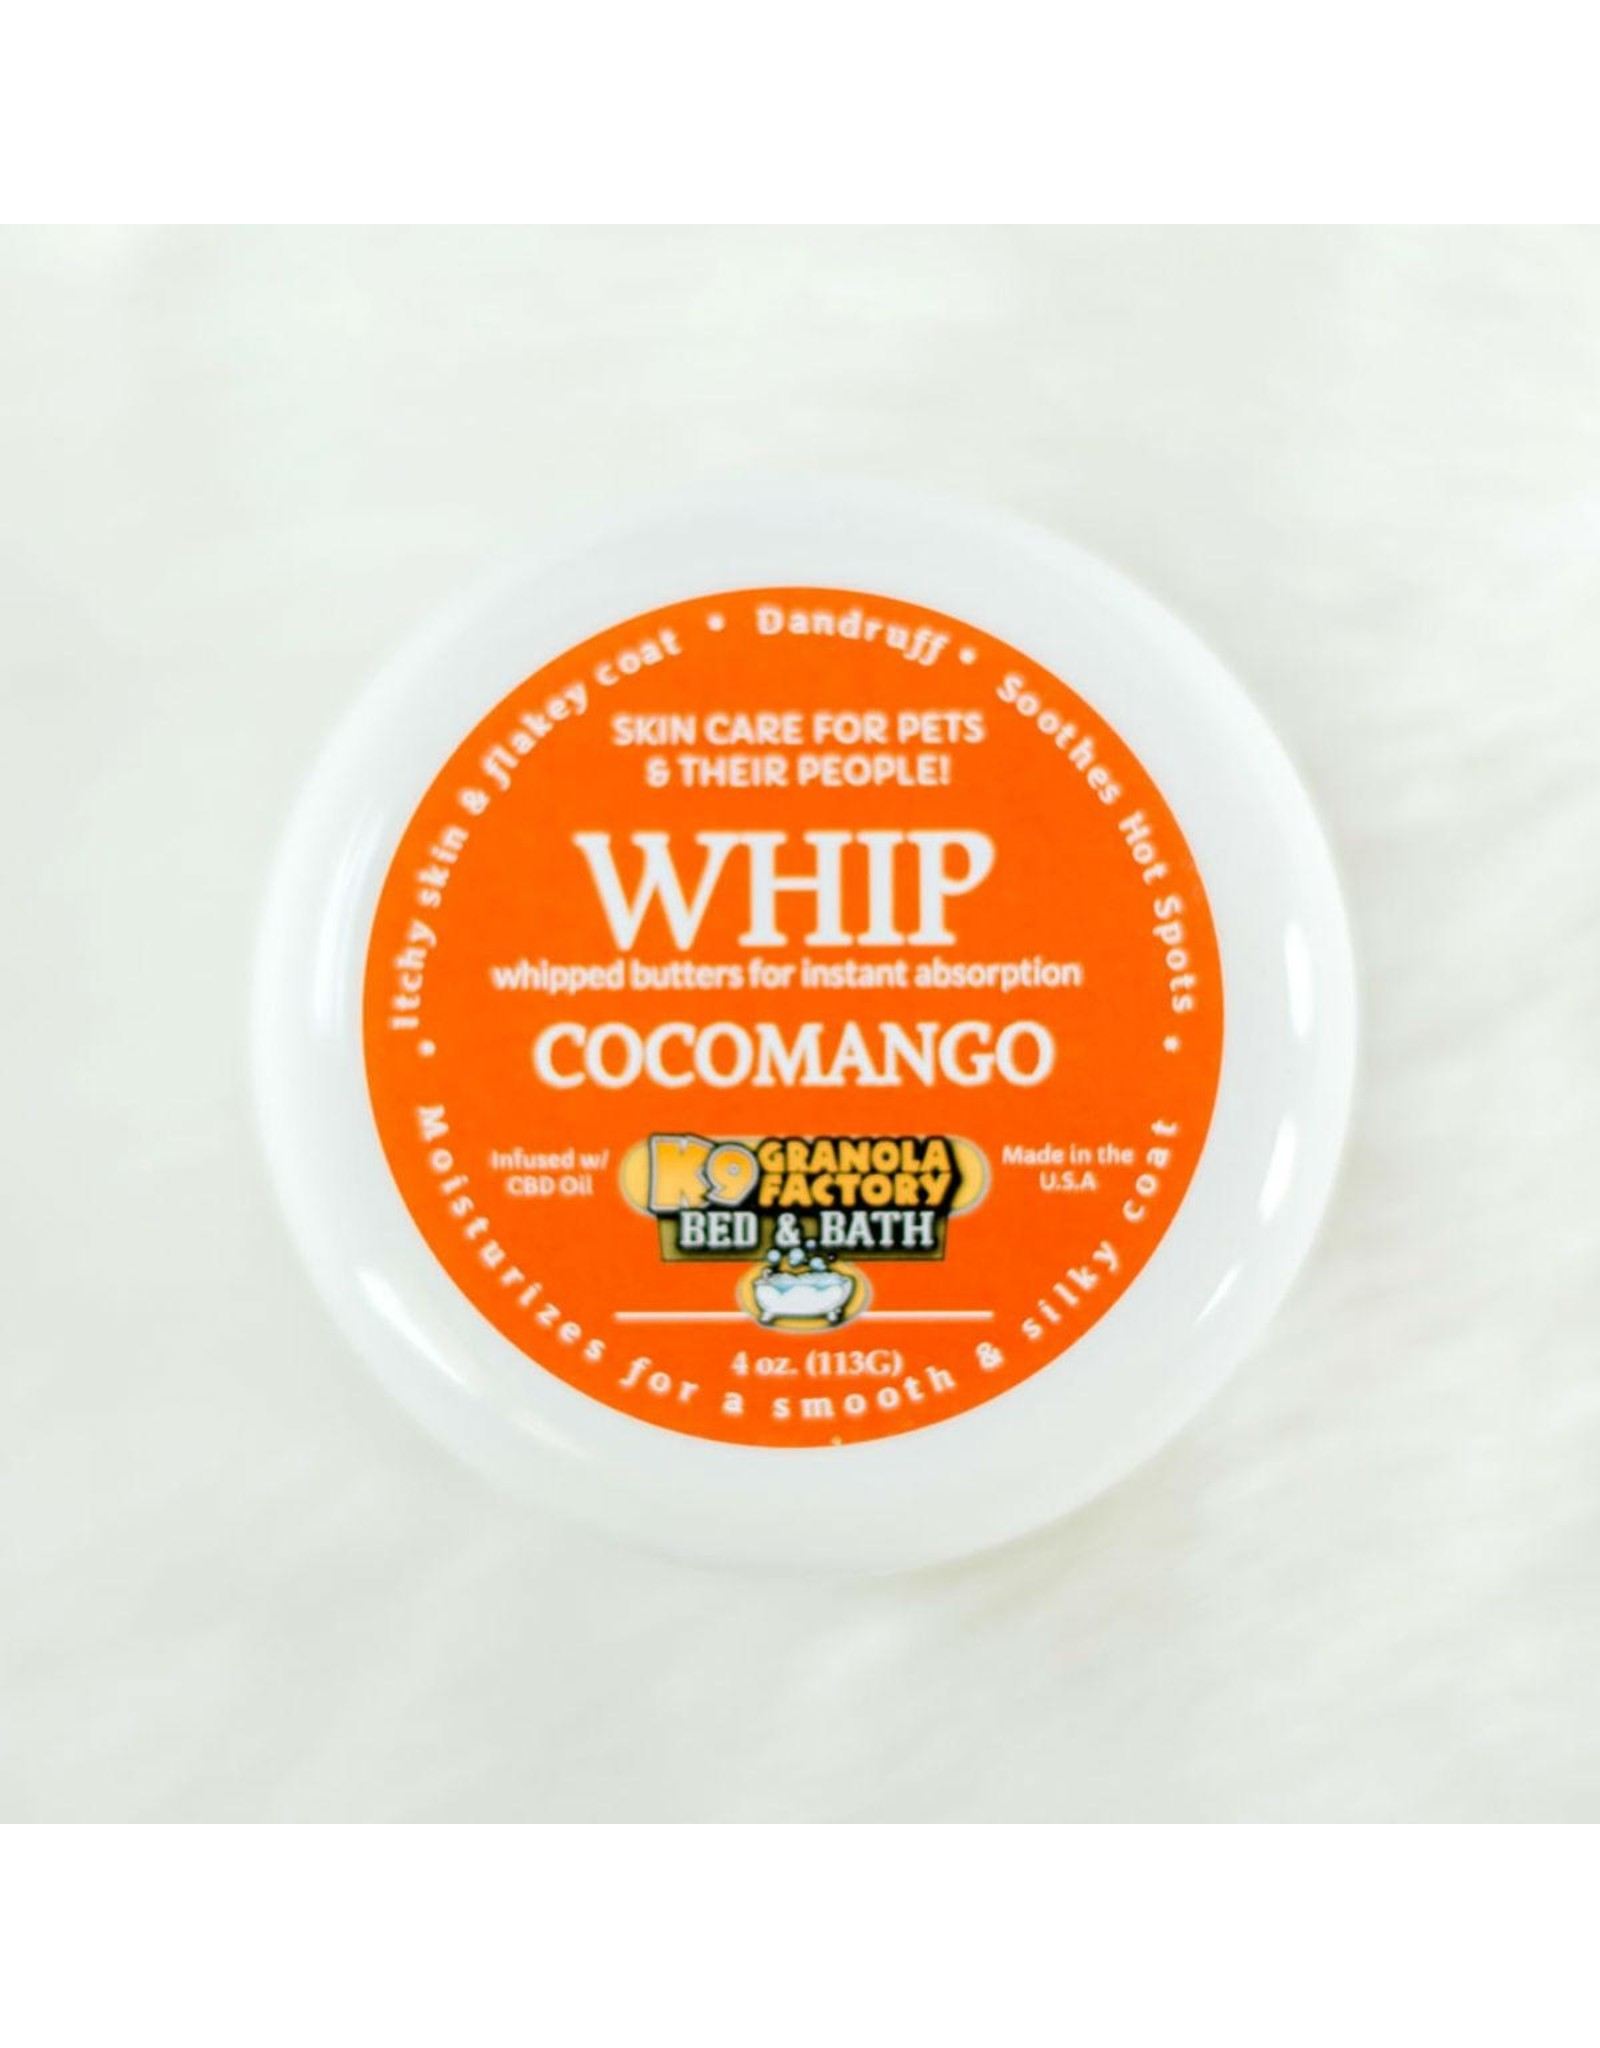 K9 Granola Factory WHIP Body Butter - Moisturizer for Dogs Skin & Coat